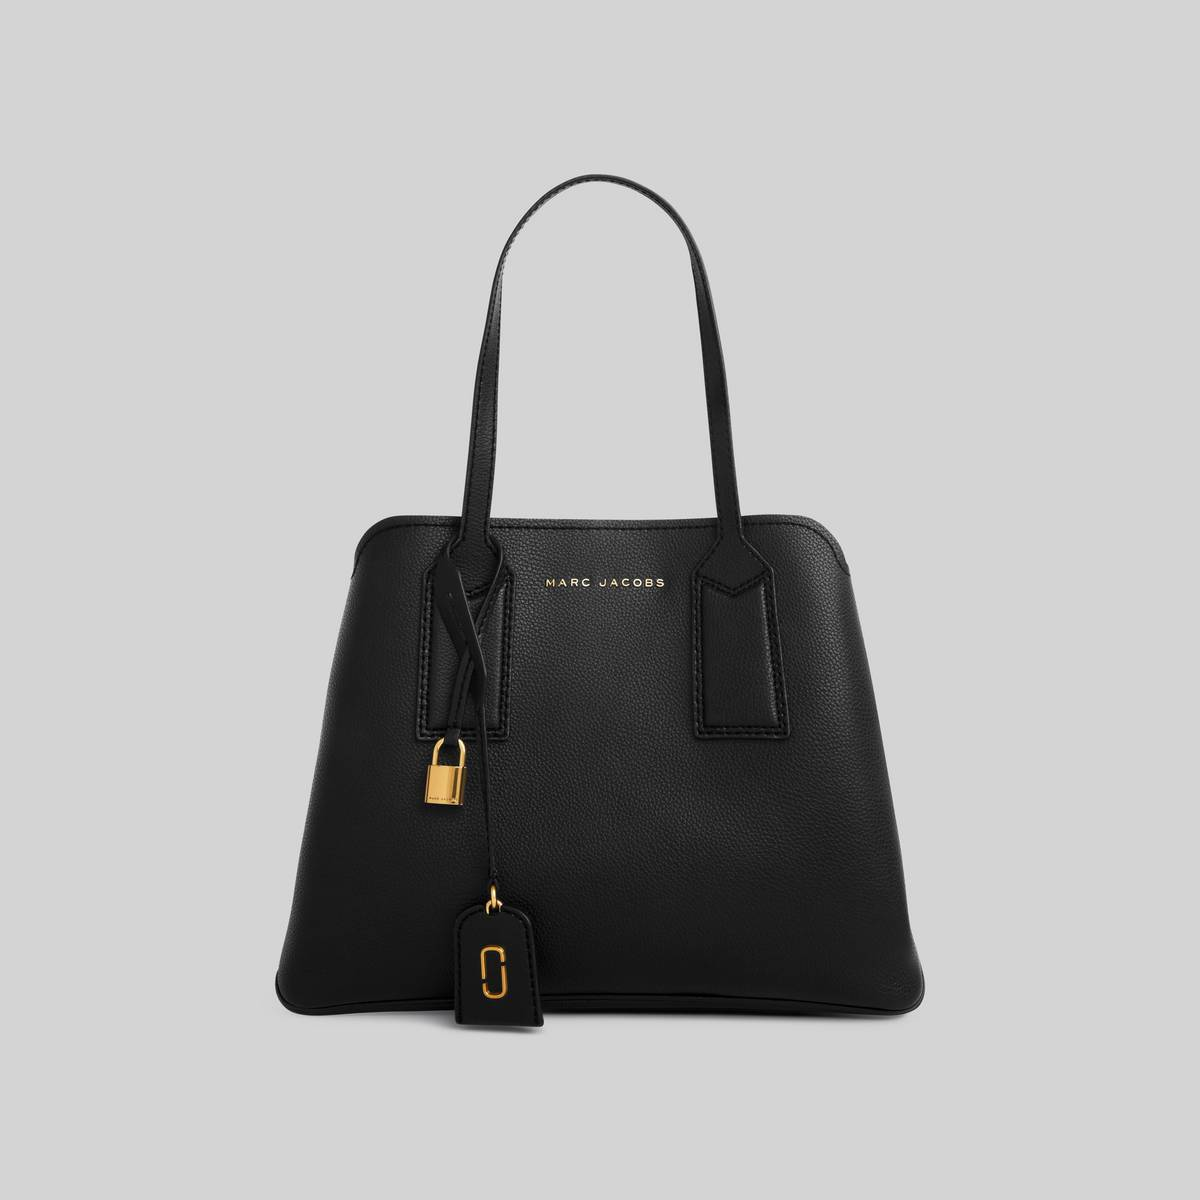 Spacious leather tote with shoulder straps and 3 interior sections. | MARC JACOBS Women\\'s The Editor Shoulder Bag in Black